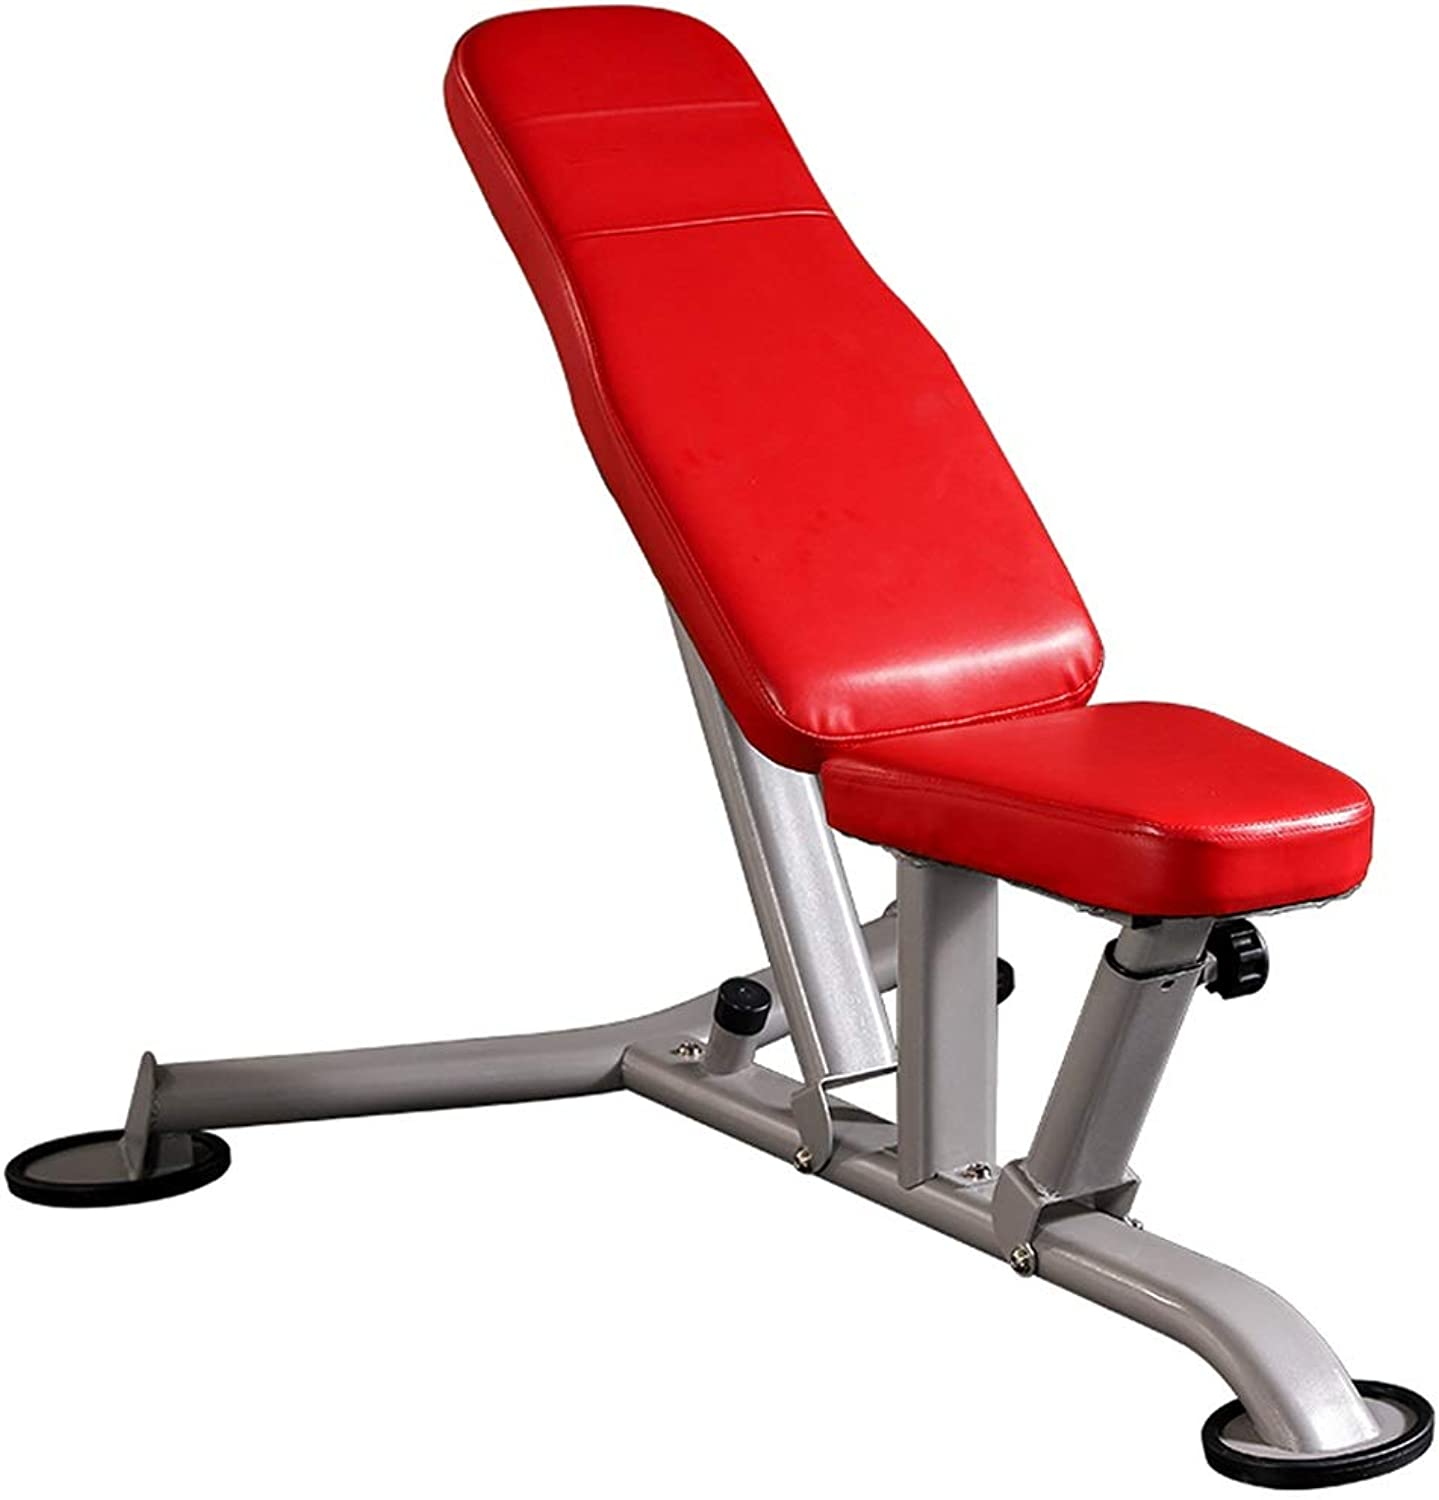 Dumbbell Bench Fitness Chair Professional Bench Chair Bird Bench Home Fitness Equipment Bench Dumbbell Bench MultiFunction Supine Board